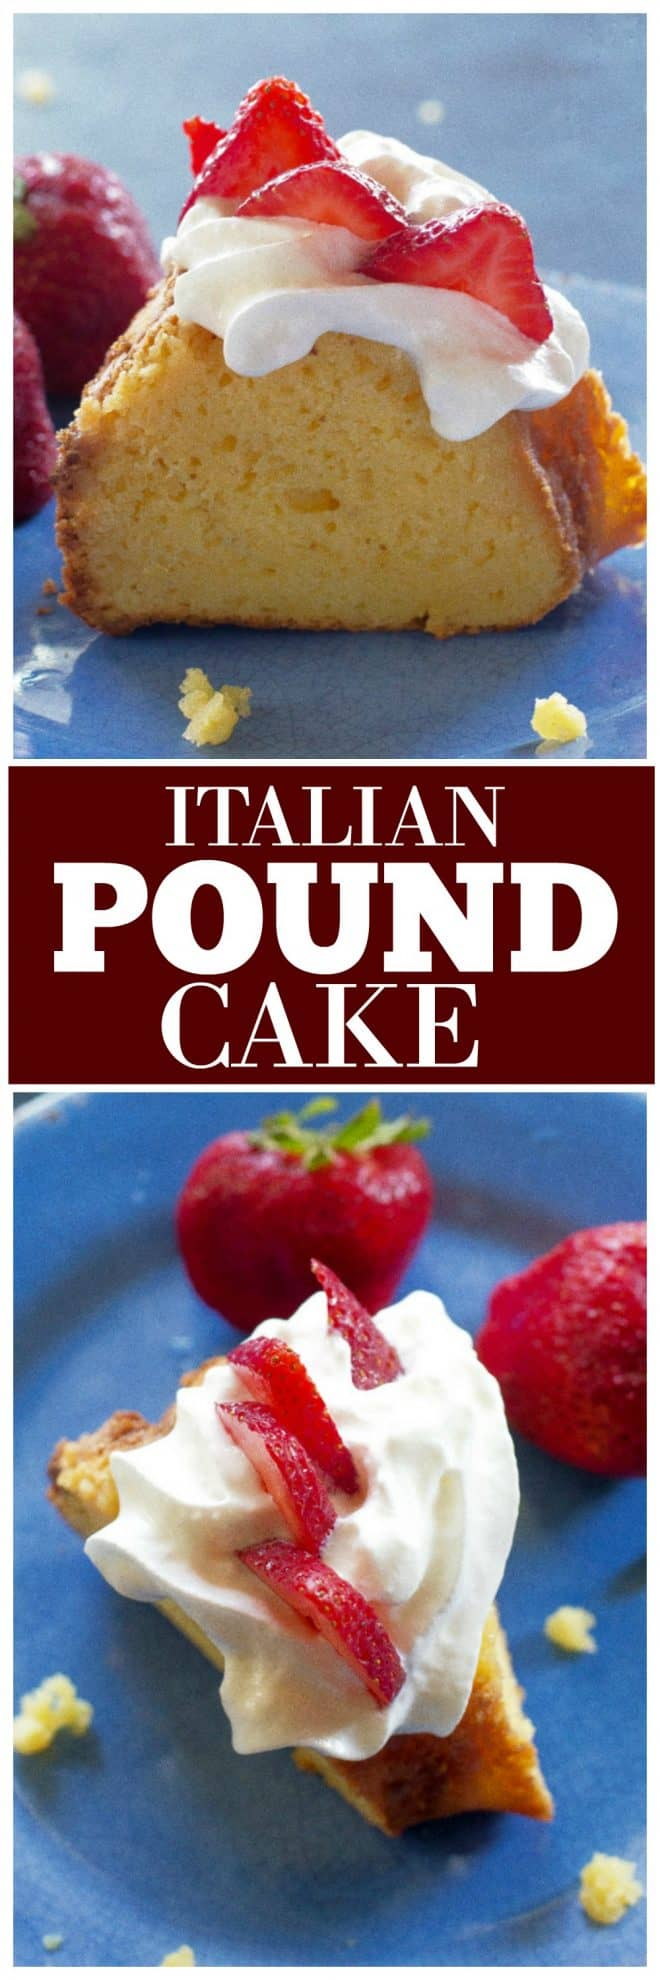 Italian Pound Cake starting with a cake mix and doctored until it's delicious! #pound #cake #italian #dessert